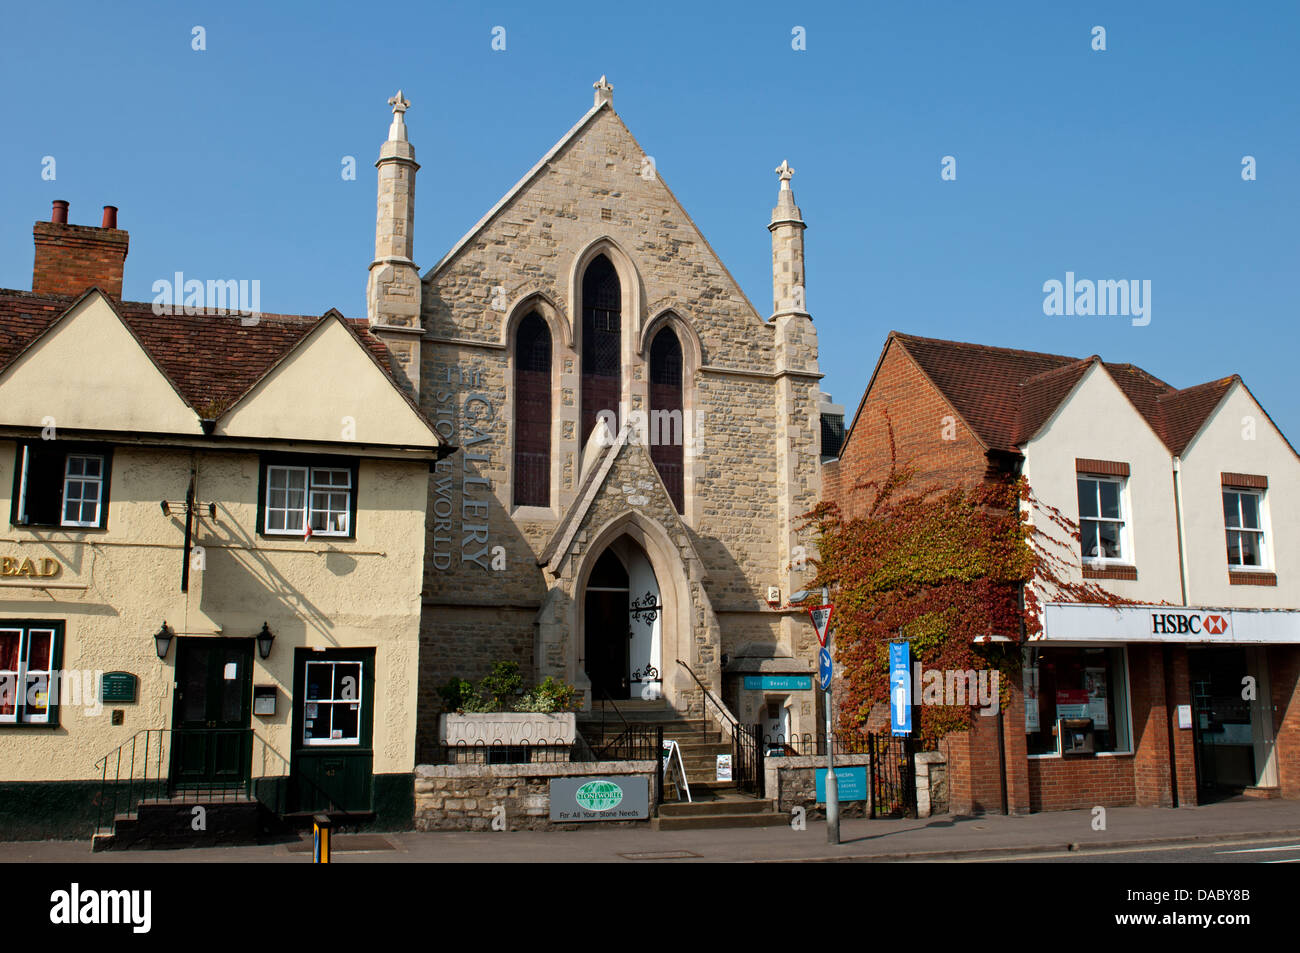 The Stoneworld Gallery, Thame, Oxfordshire, UK - Stock Image